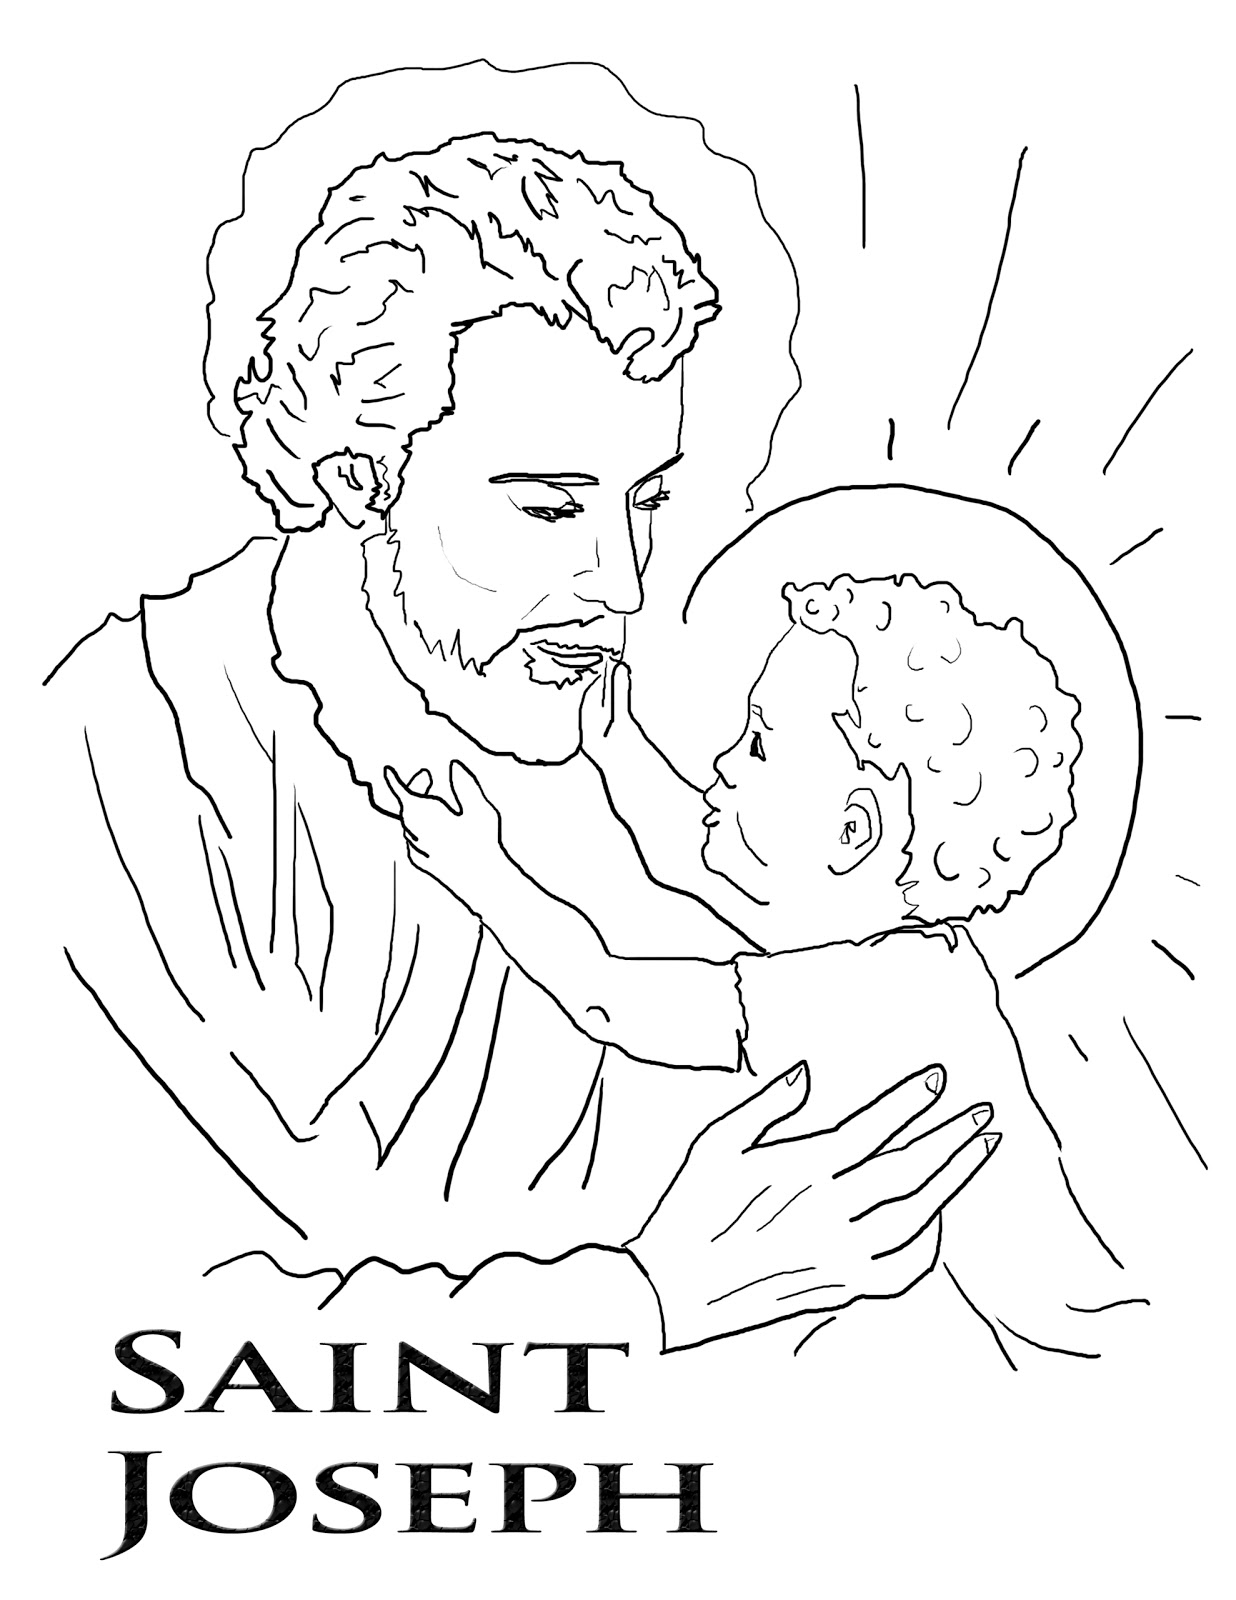 stjoseph feast day march 19 art portraits of saints saints pinterest st joseph - Father Coloring Page Catholic